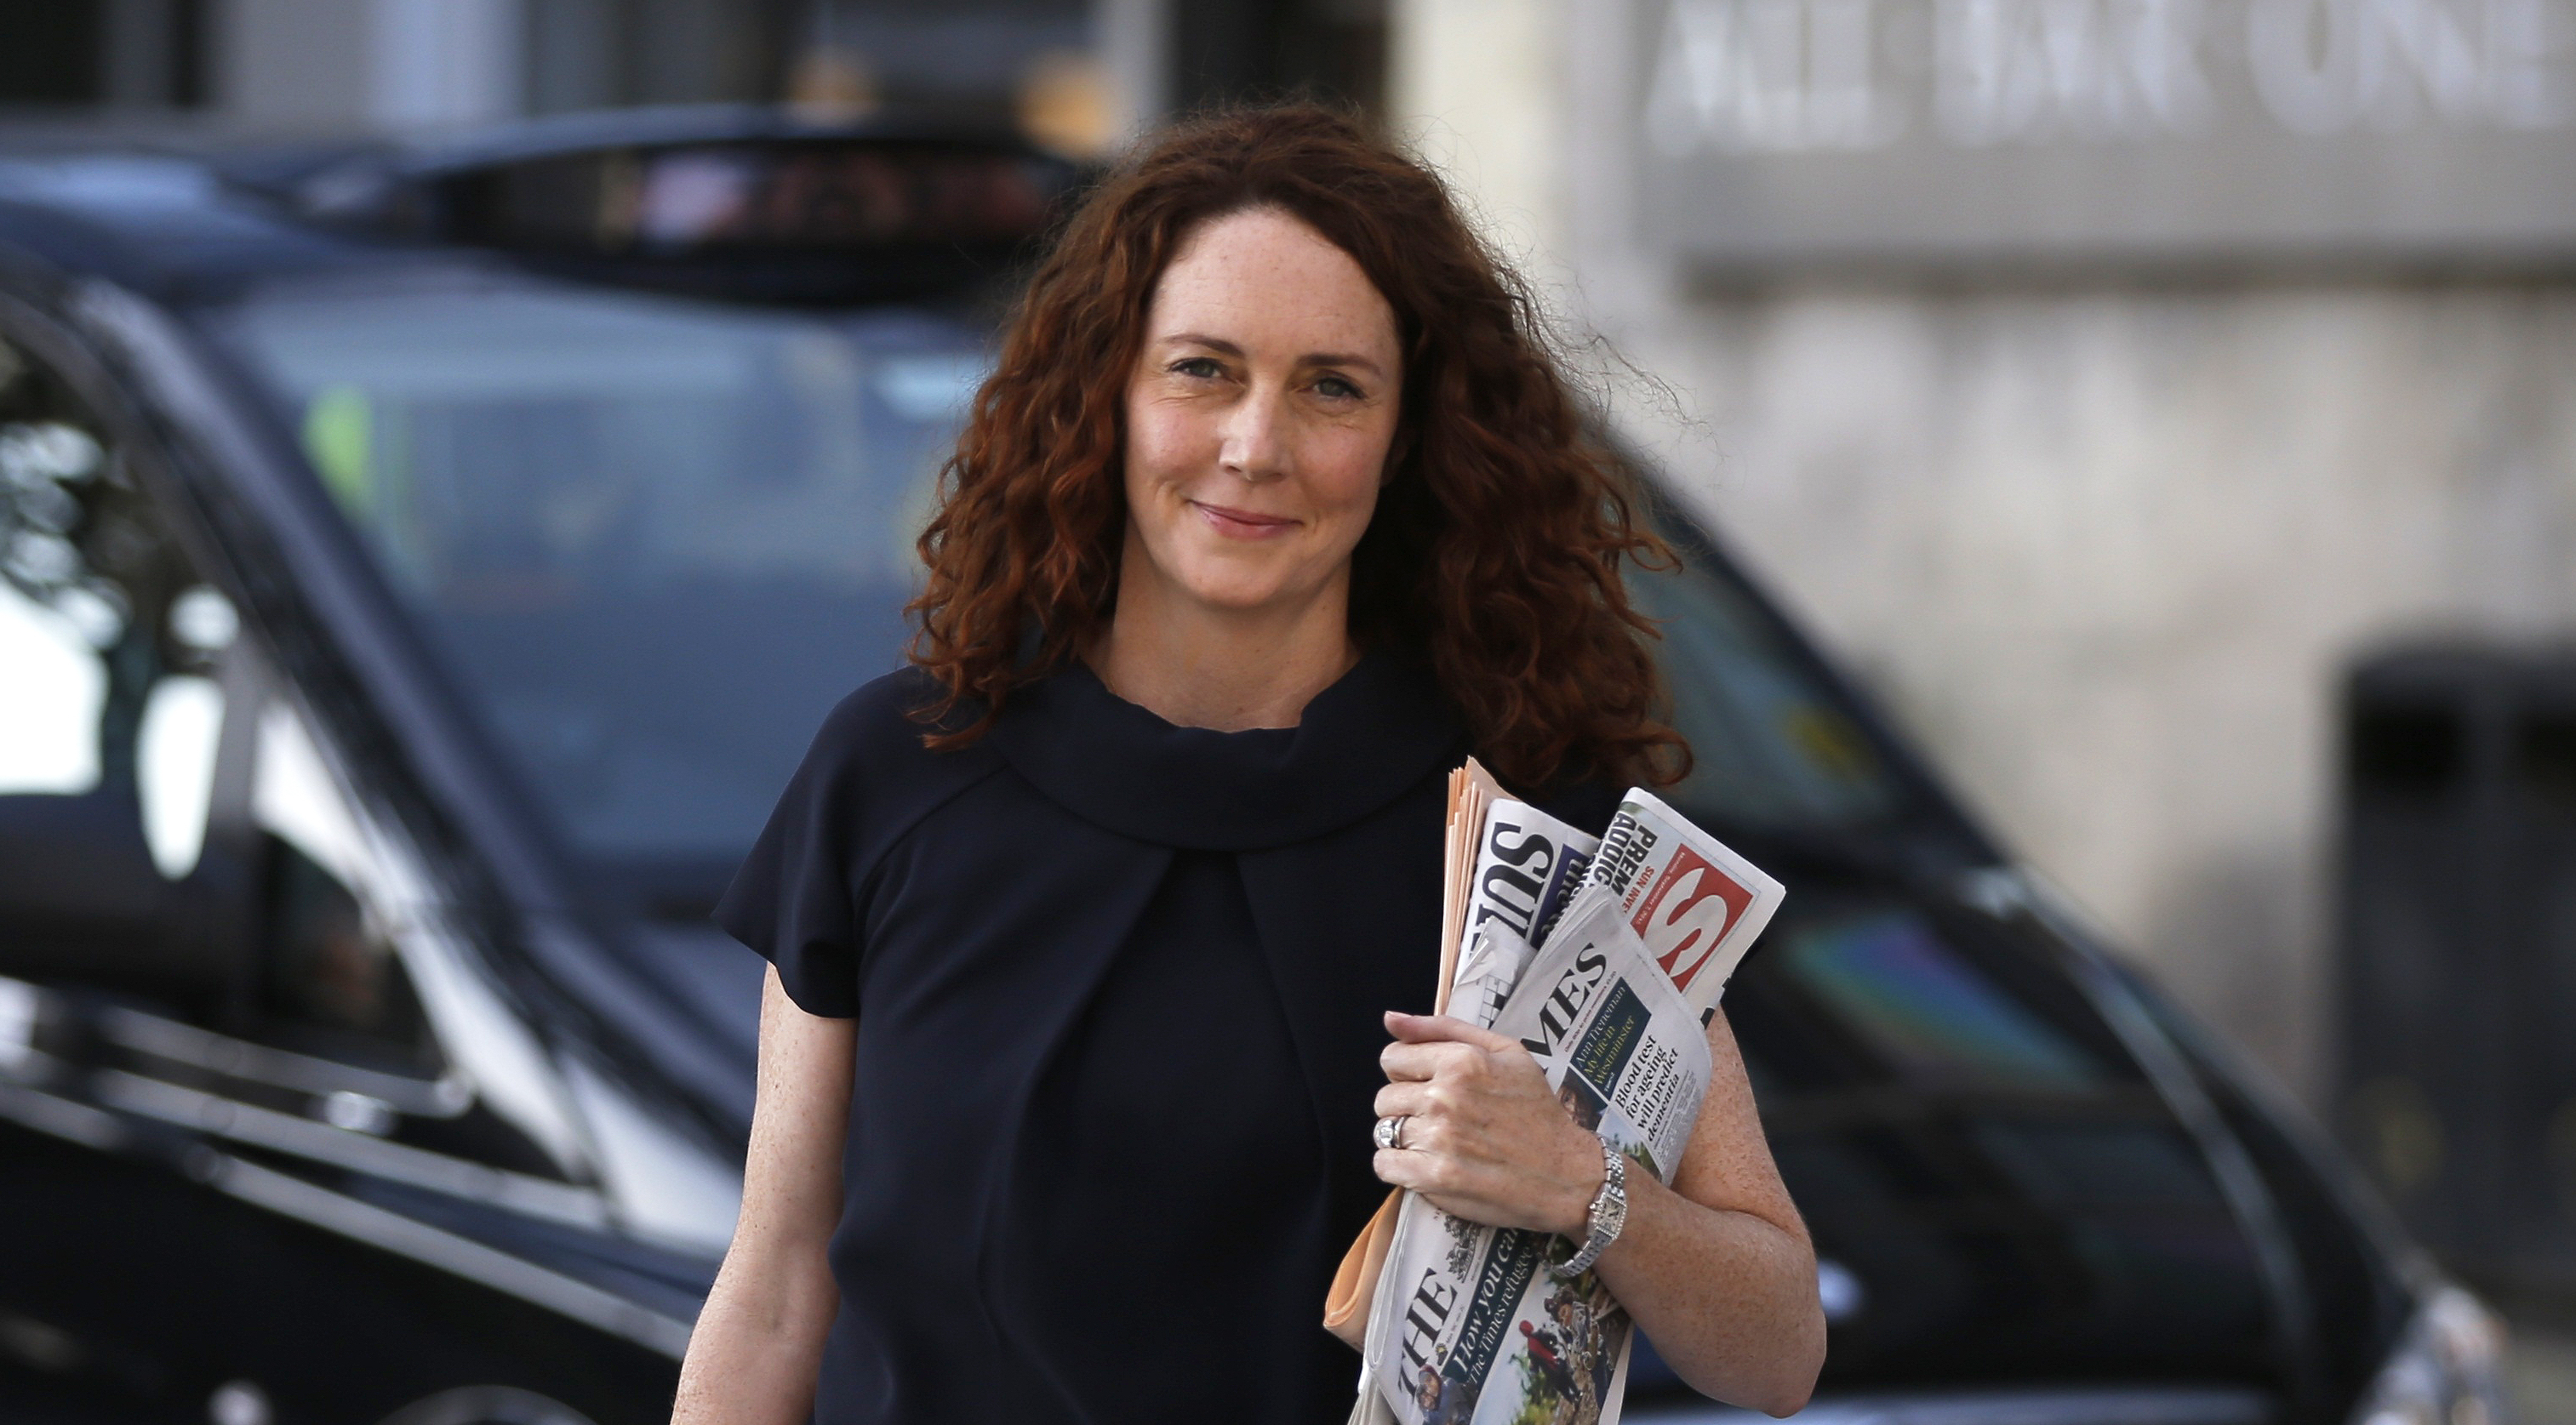 A wide shot of a woman walking on a city street carrying several periodicals